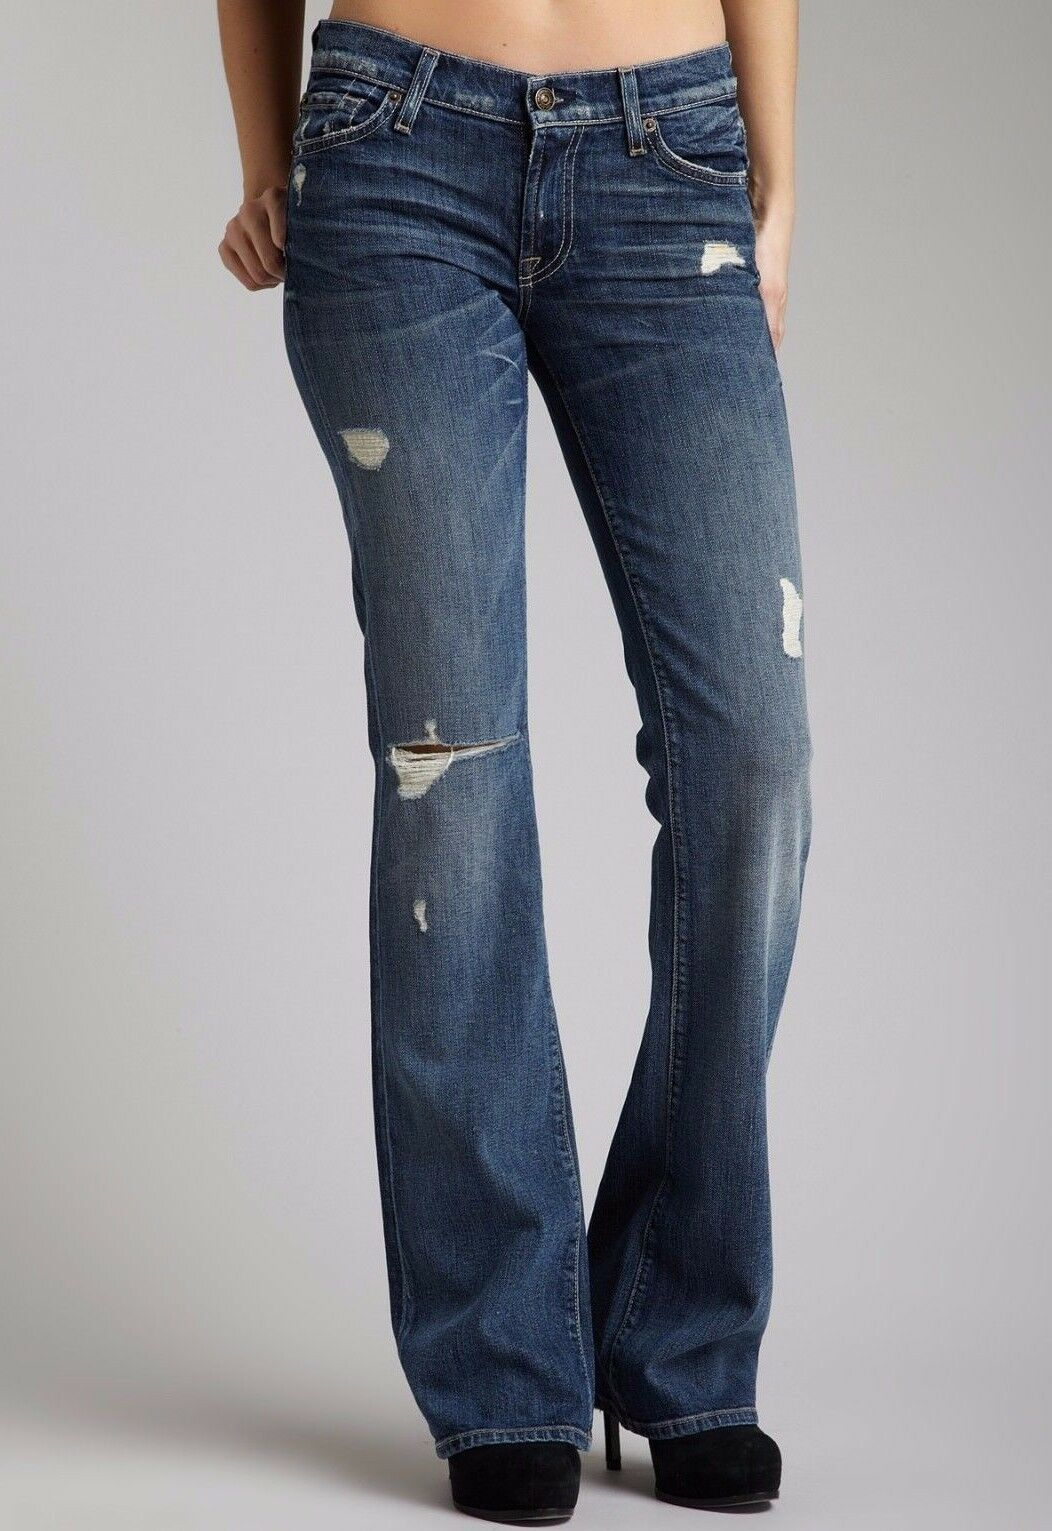 NWT 7 FOR ALL MANKIND Sz28 BOOTCUT MIDRISE STRETCH JEANS DISTRESSED VINTAGE CAL